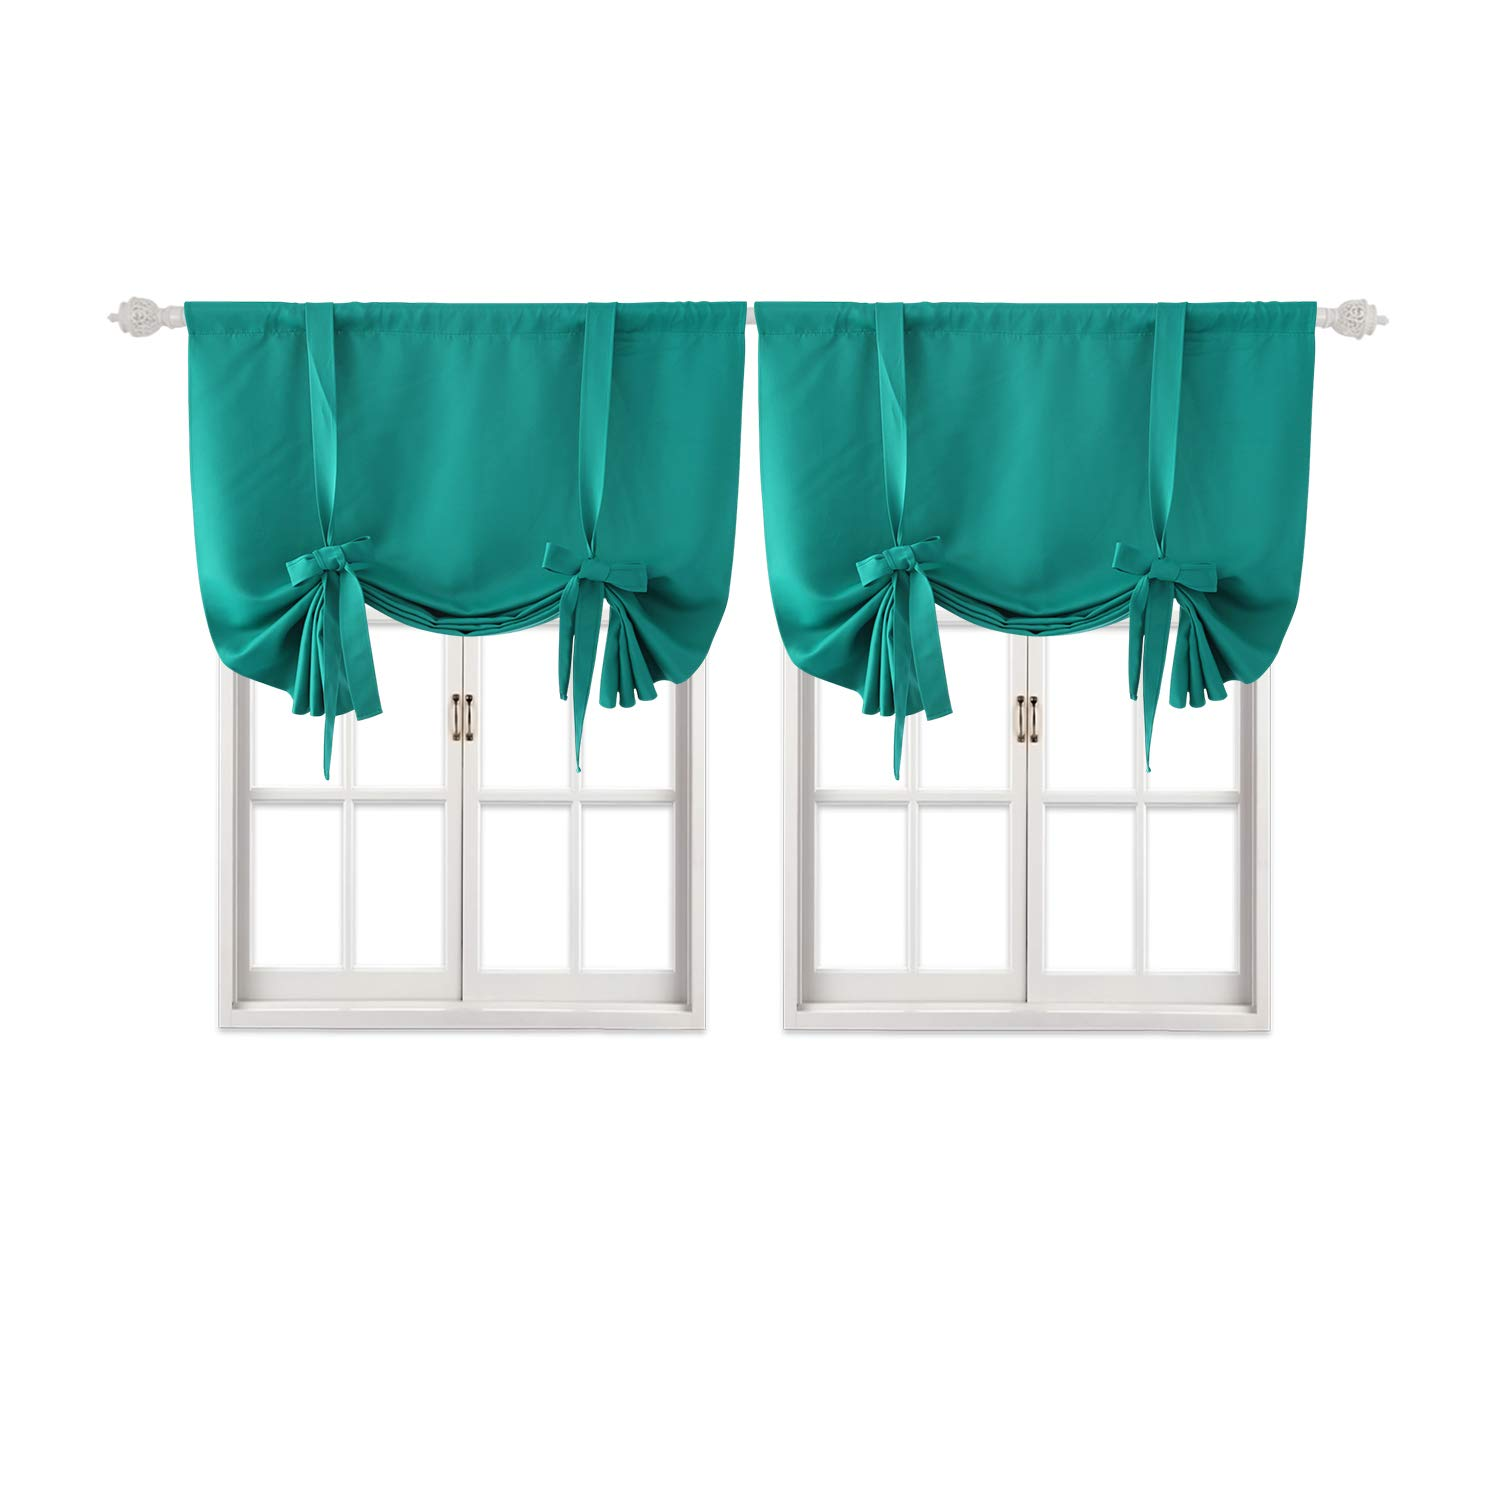 Deconovo Teal Blackout Curtains Rod Pocket Blackout Drapes Room Darkening Curtains for Living Room Turquoise/Teal 42W x 45L 2 Panels